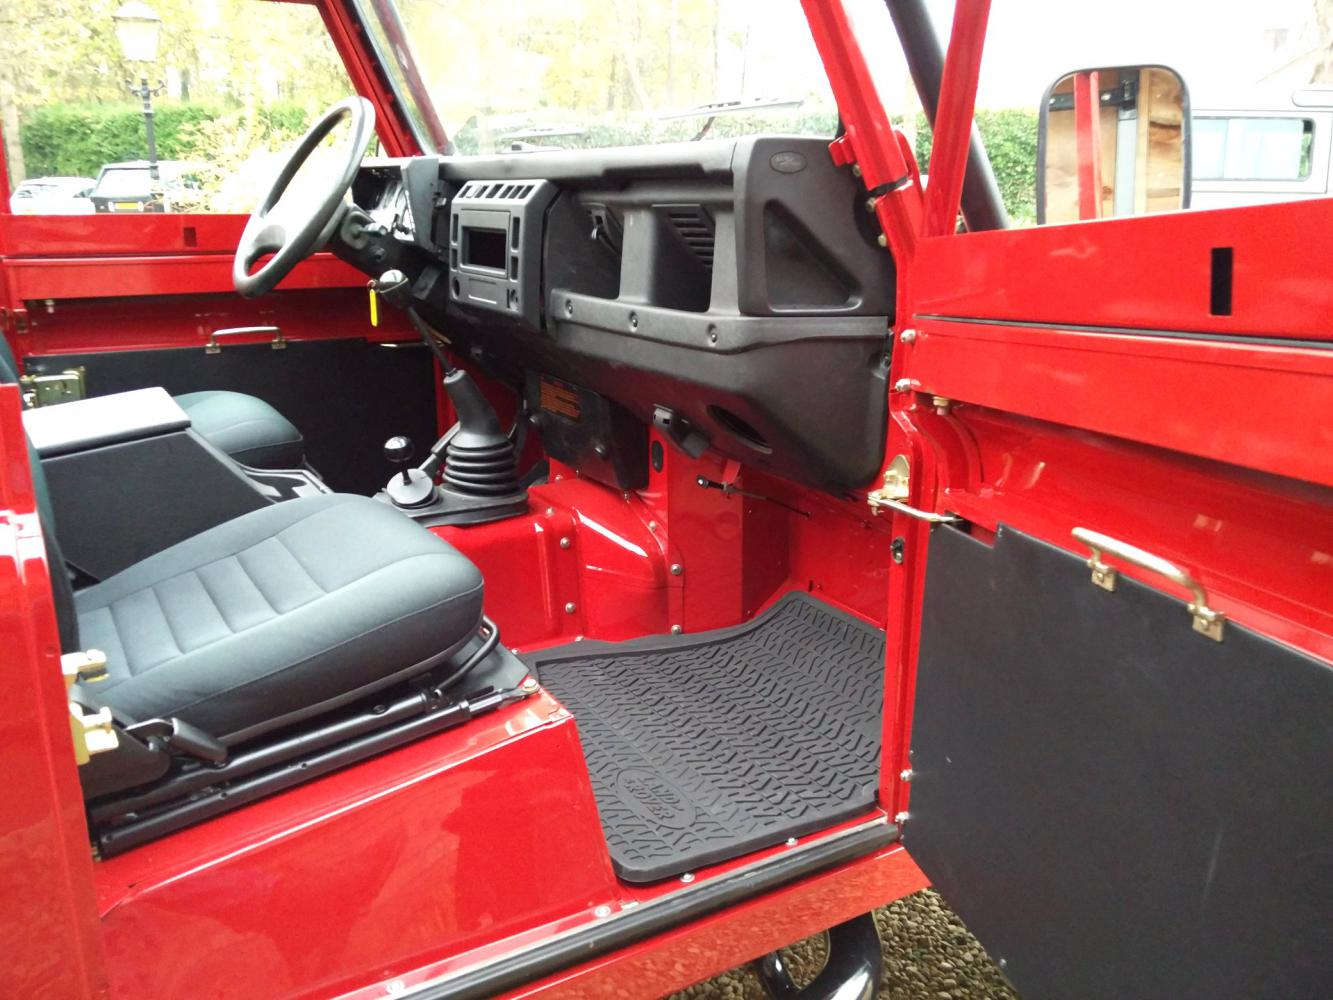 Click image for larger version  Name:1992 LR LHD Defender 90 Red 200 Tdi A day 15 dash and trim.jpg Views:60 Size:160.3 KB ID:323753